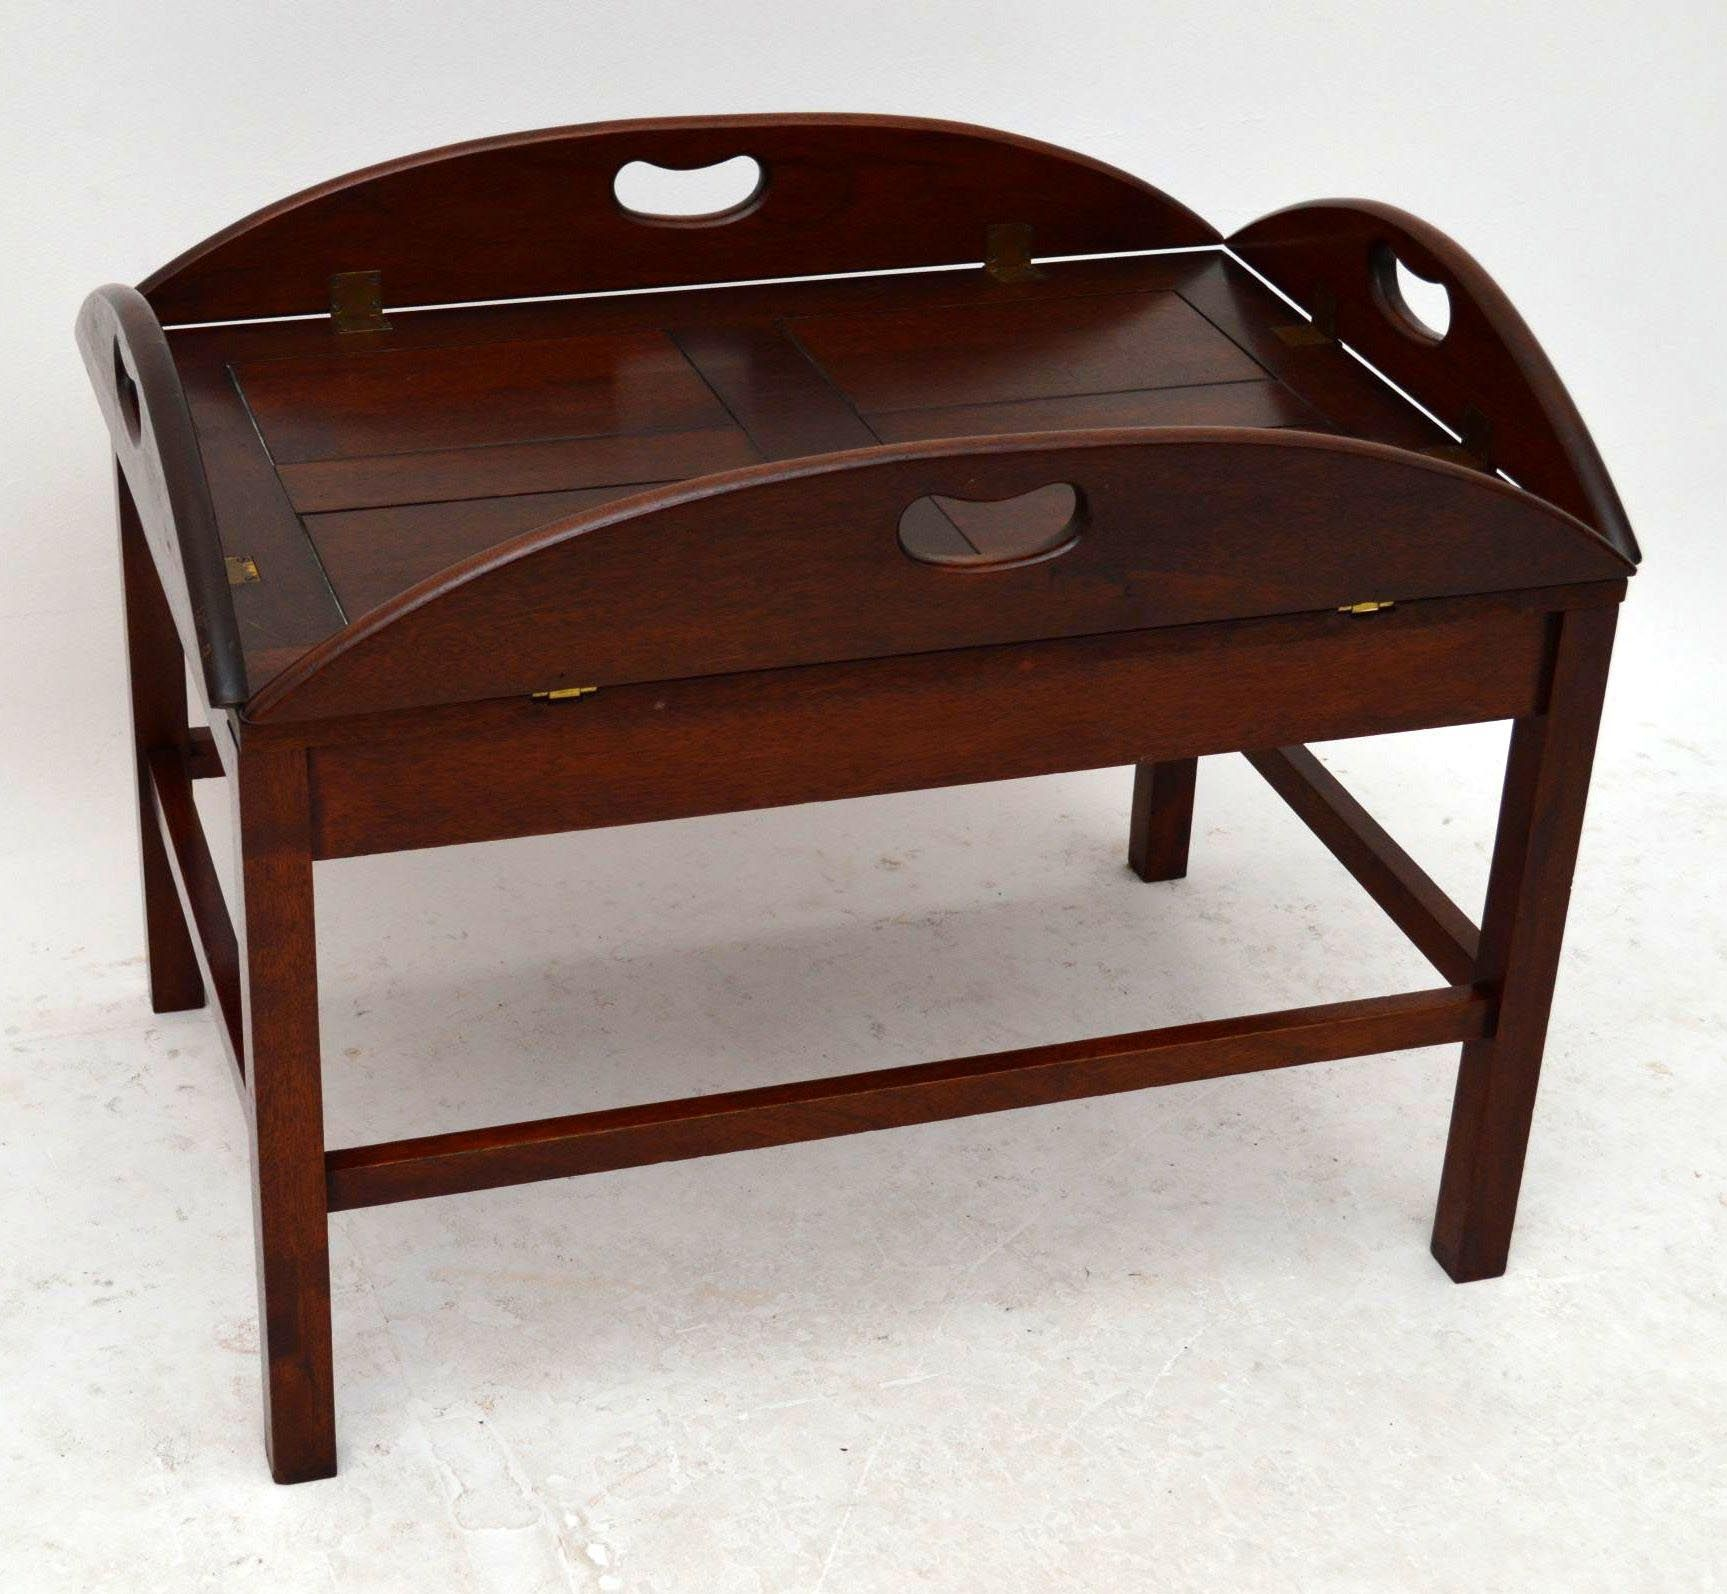 Mahogany Butler Tray Coffee Table